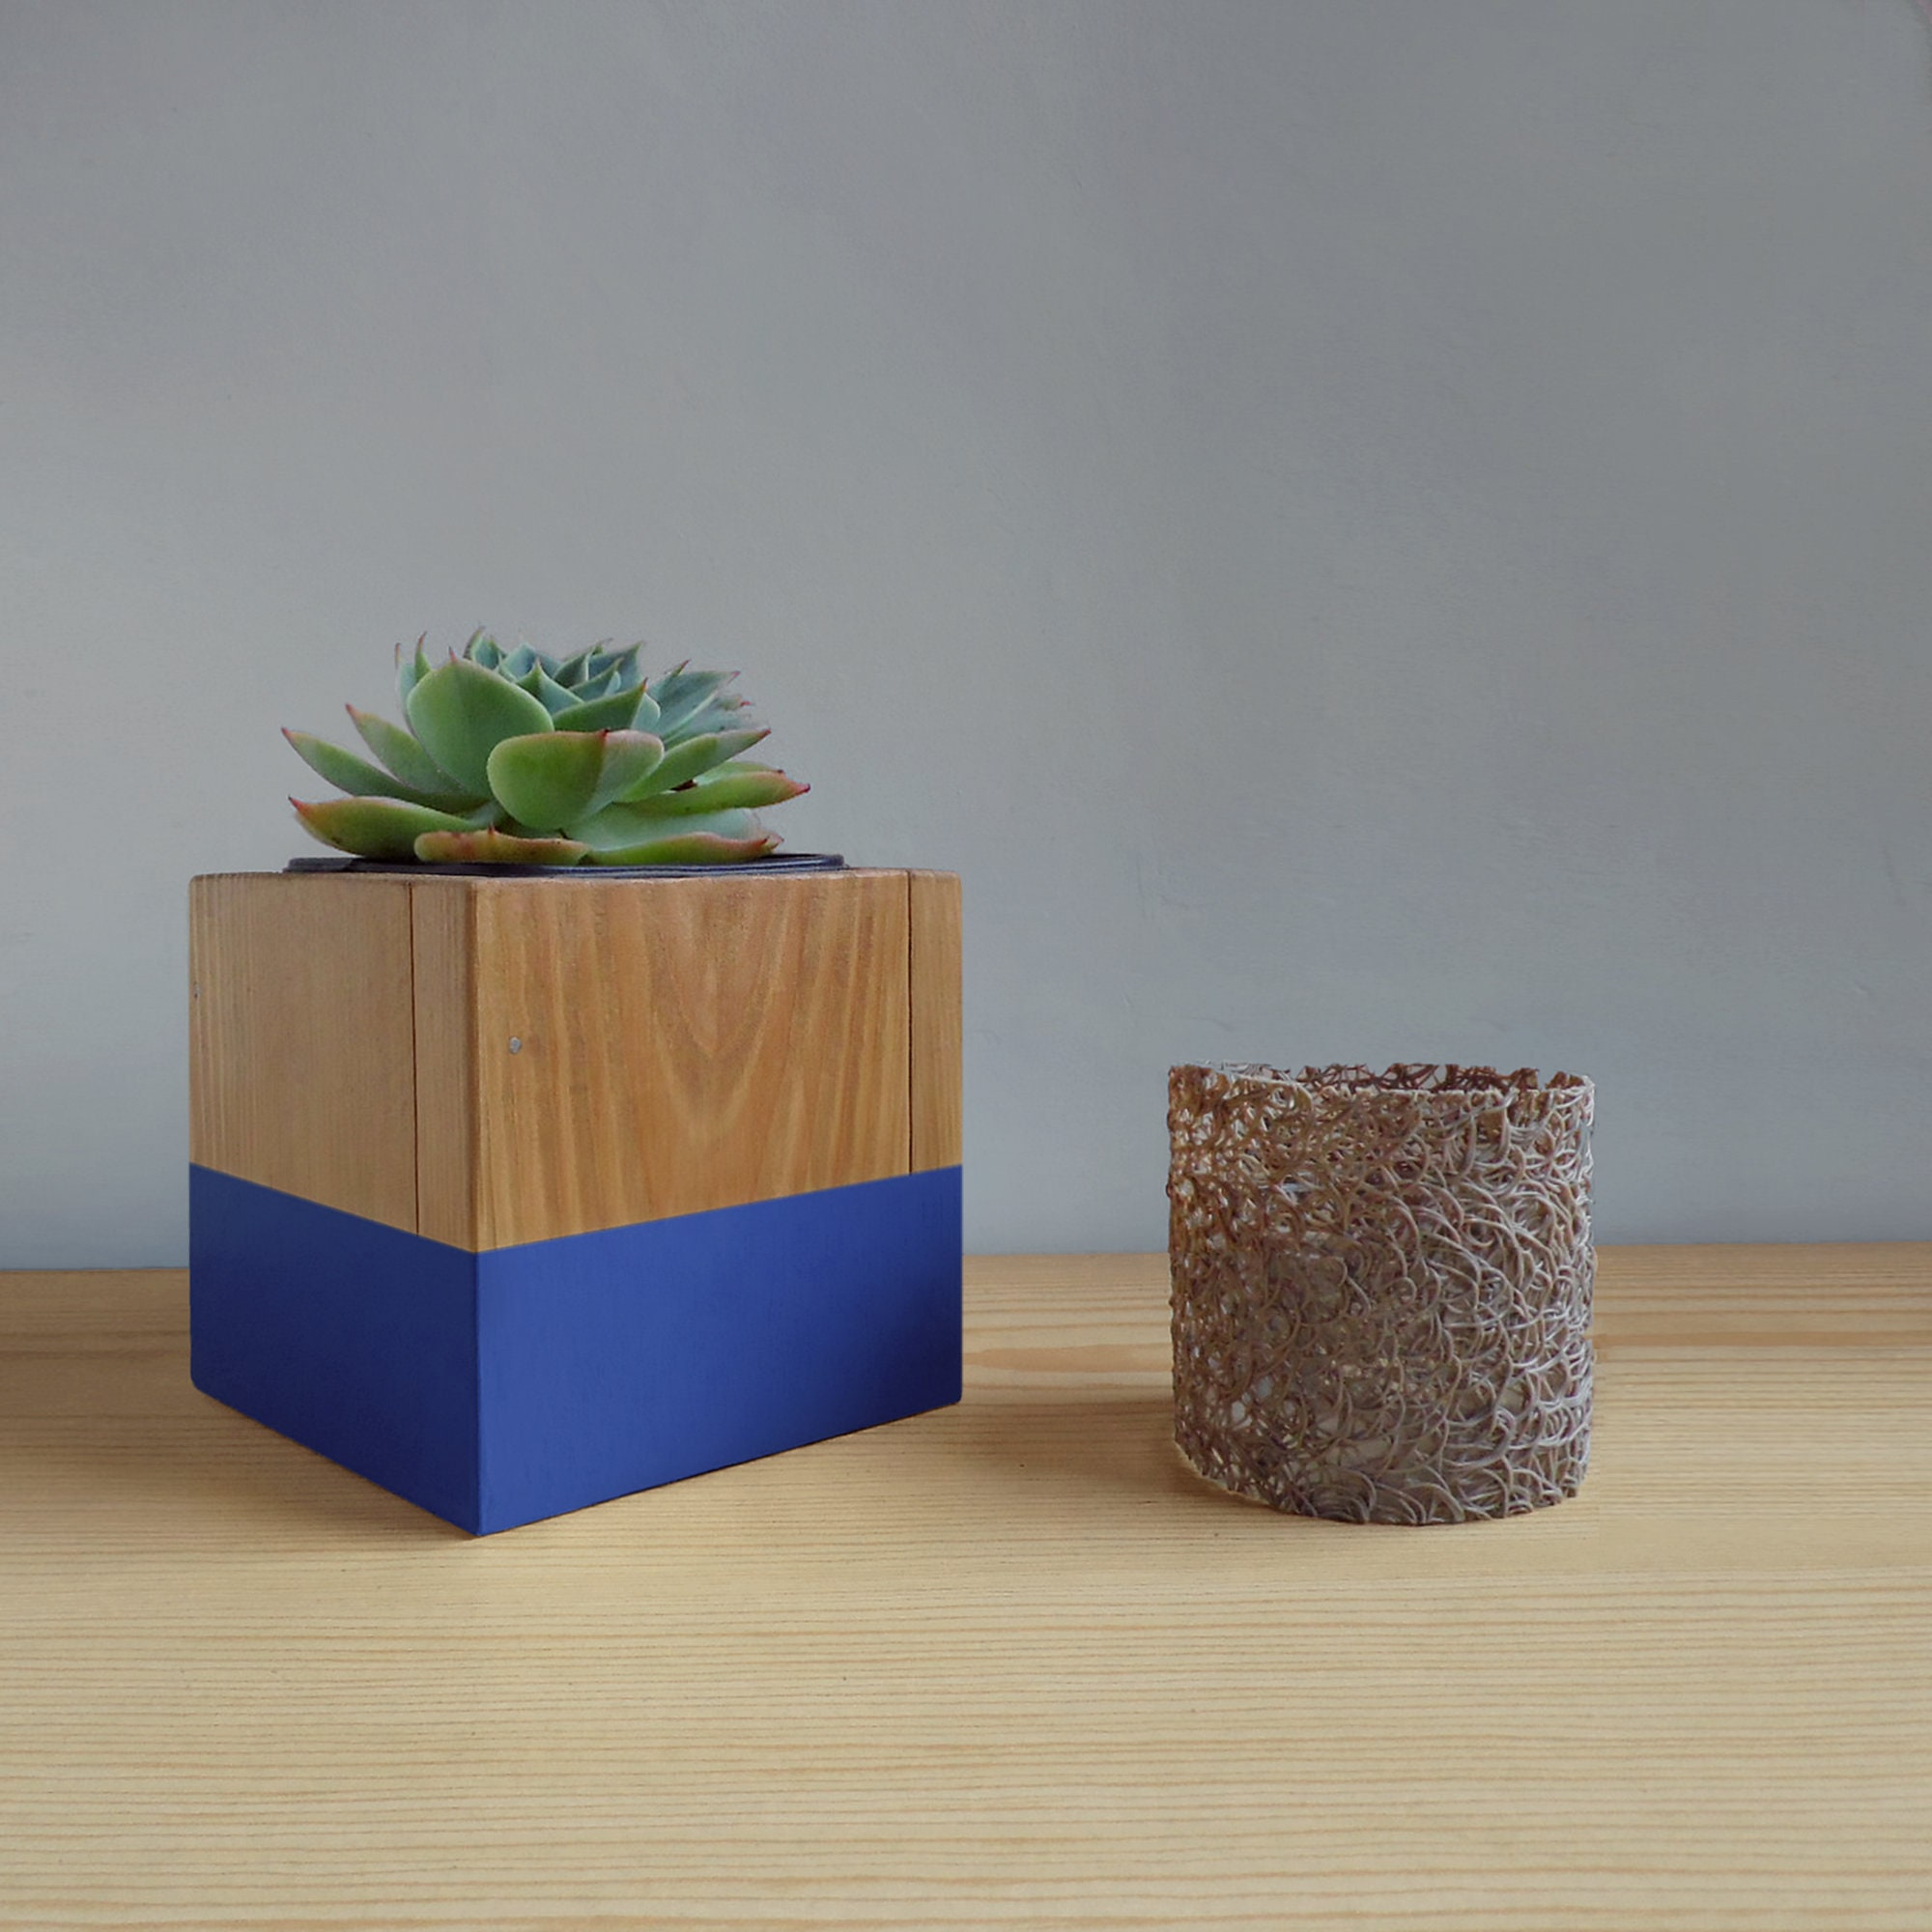 Planter Herbes Aromatiques Jardiniere plant pot dewa - for indoor plants , succulents , cactus - gifts for plant  lover